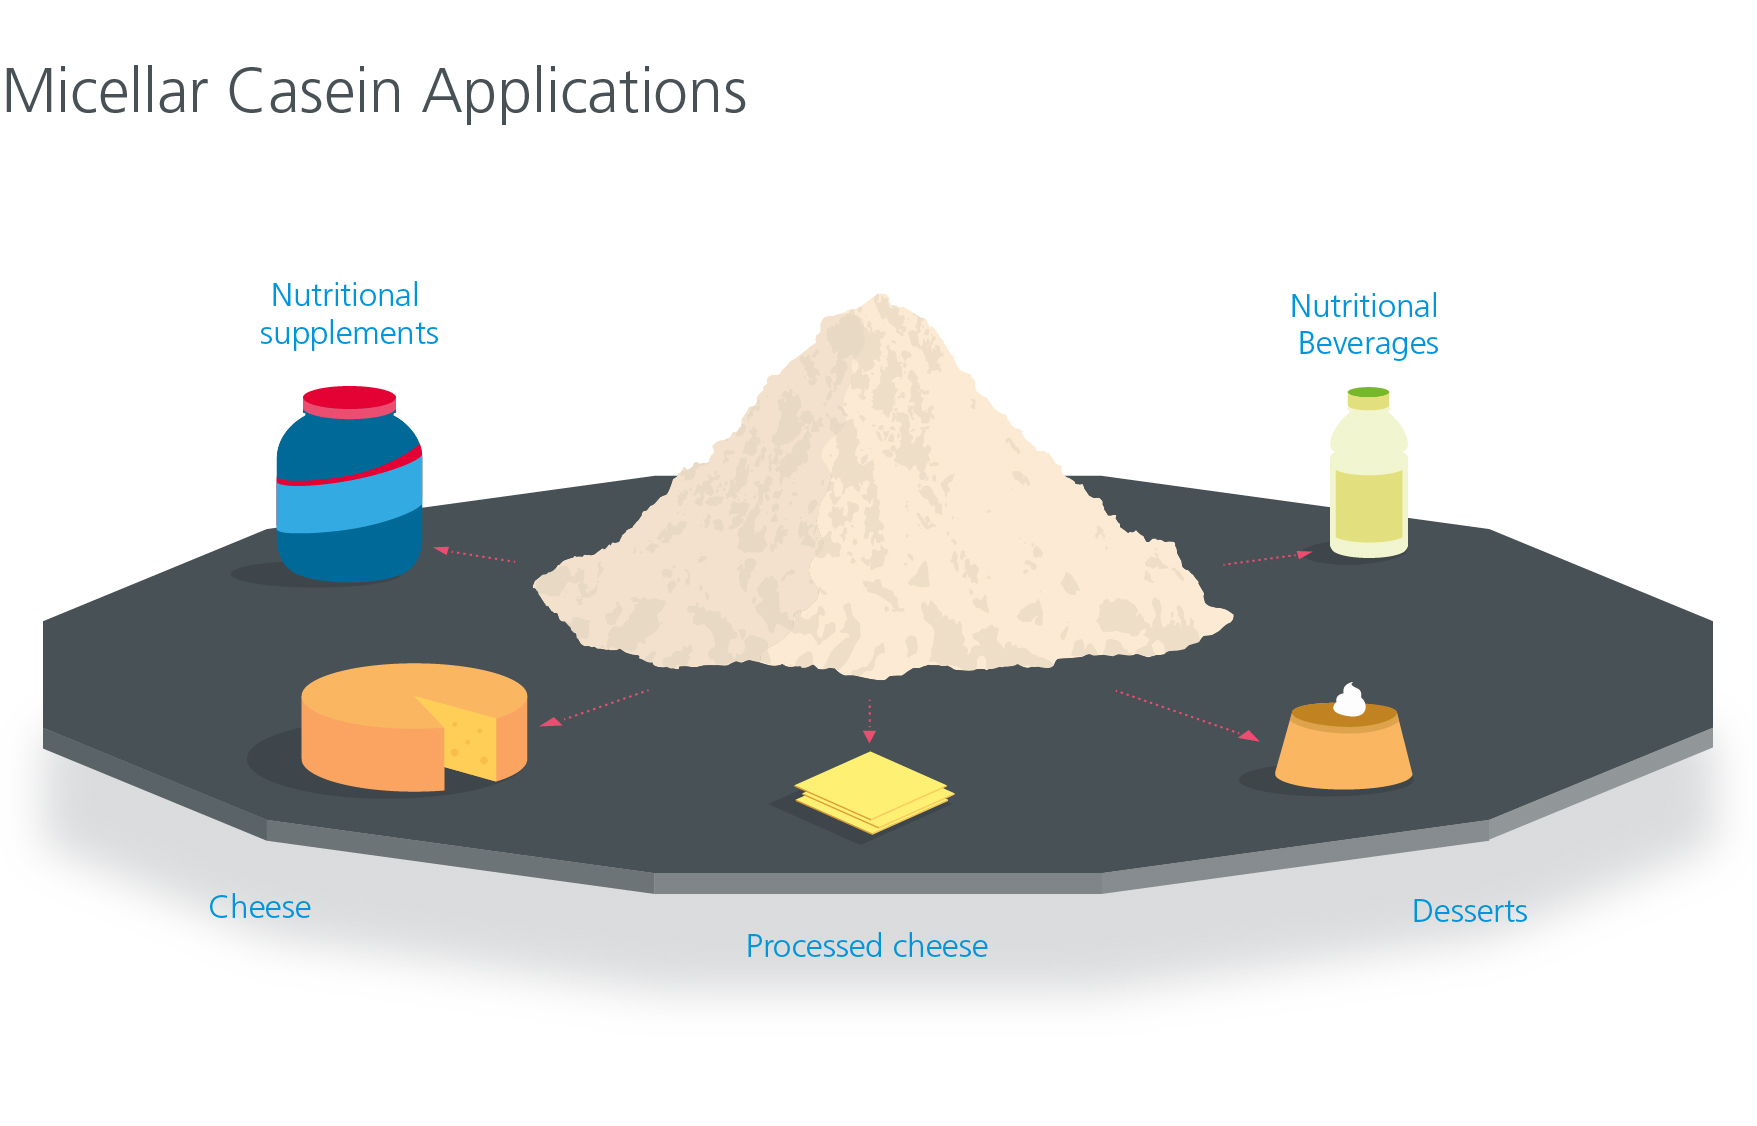 Micellar Casein applications